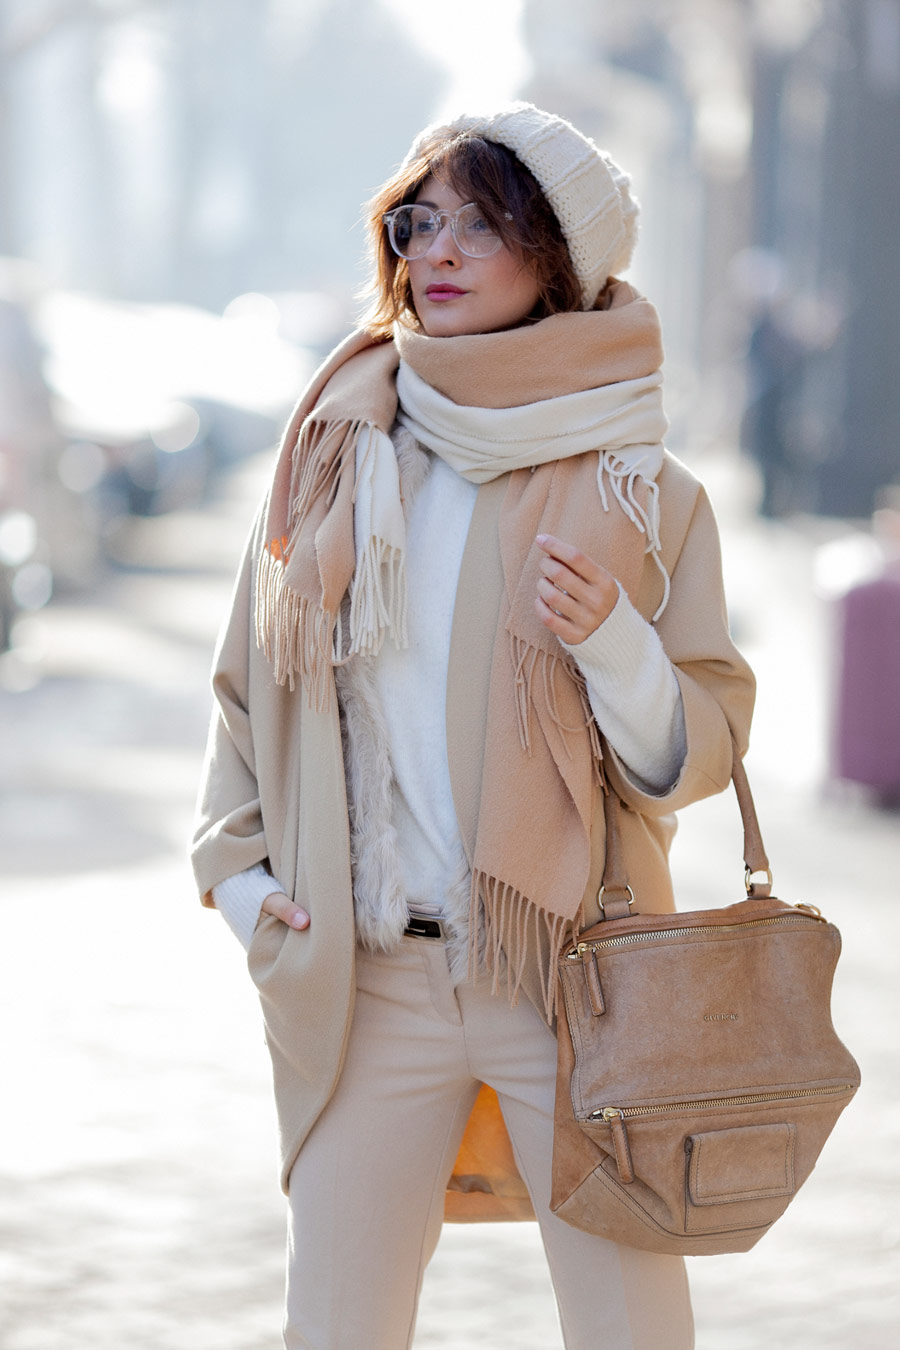 camel outfit, camel coat outfit, Givenchy Pandora bag, total beige look, winter outfits,